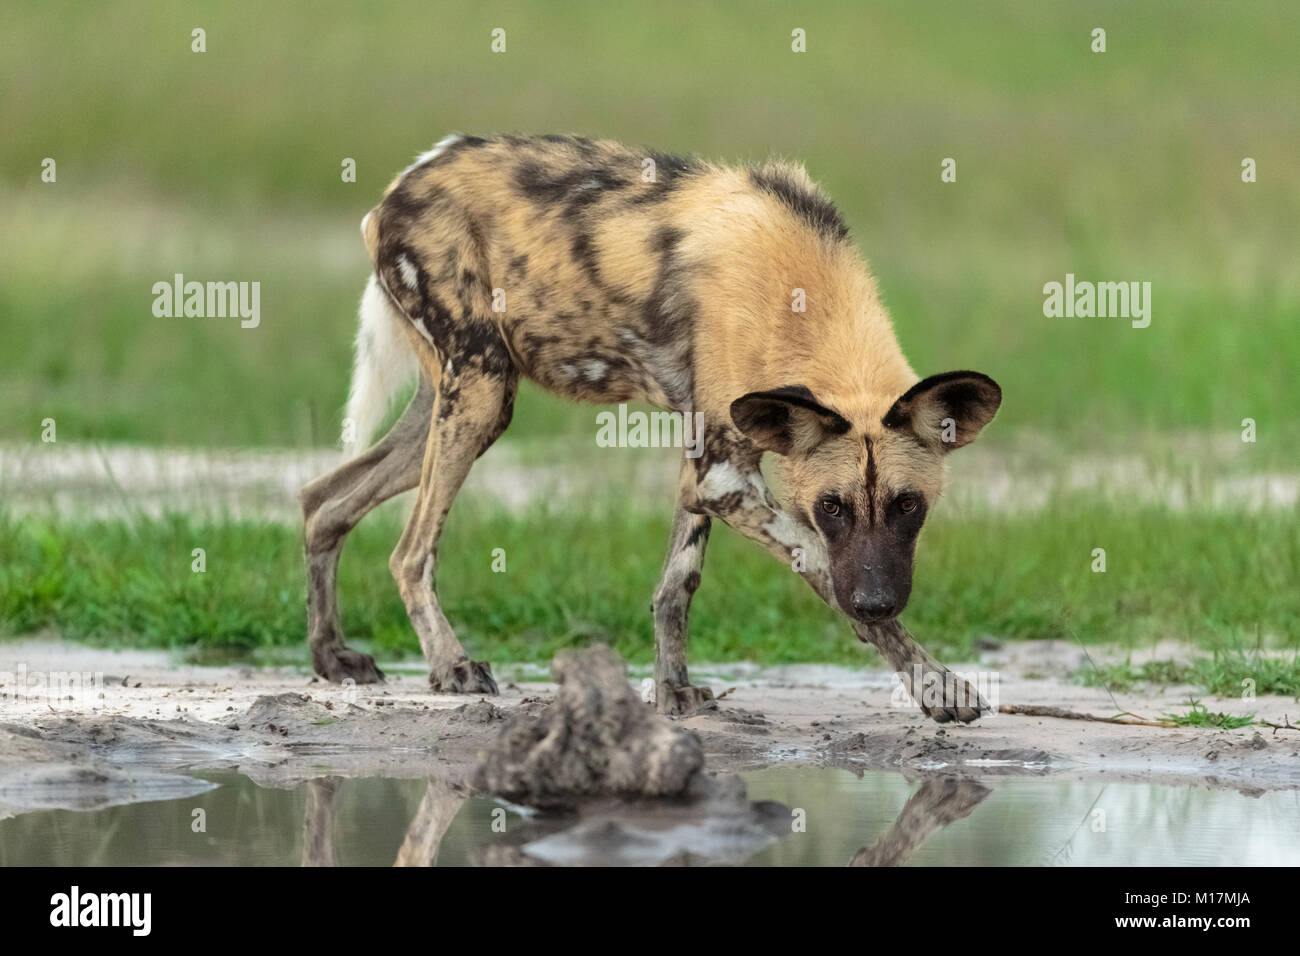 African Wild dog or painted dog walking head down facing camera along a puddle of water - Stock Image